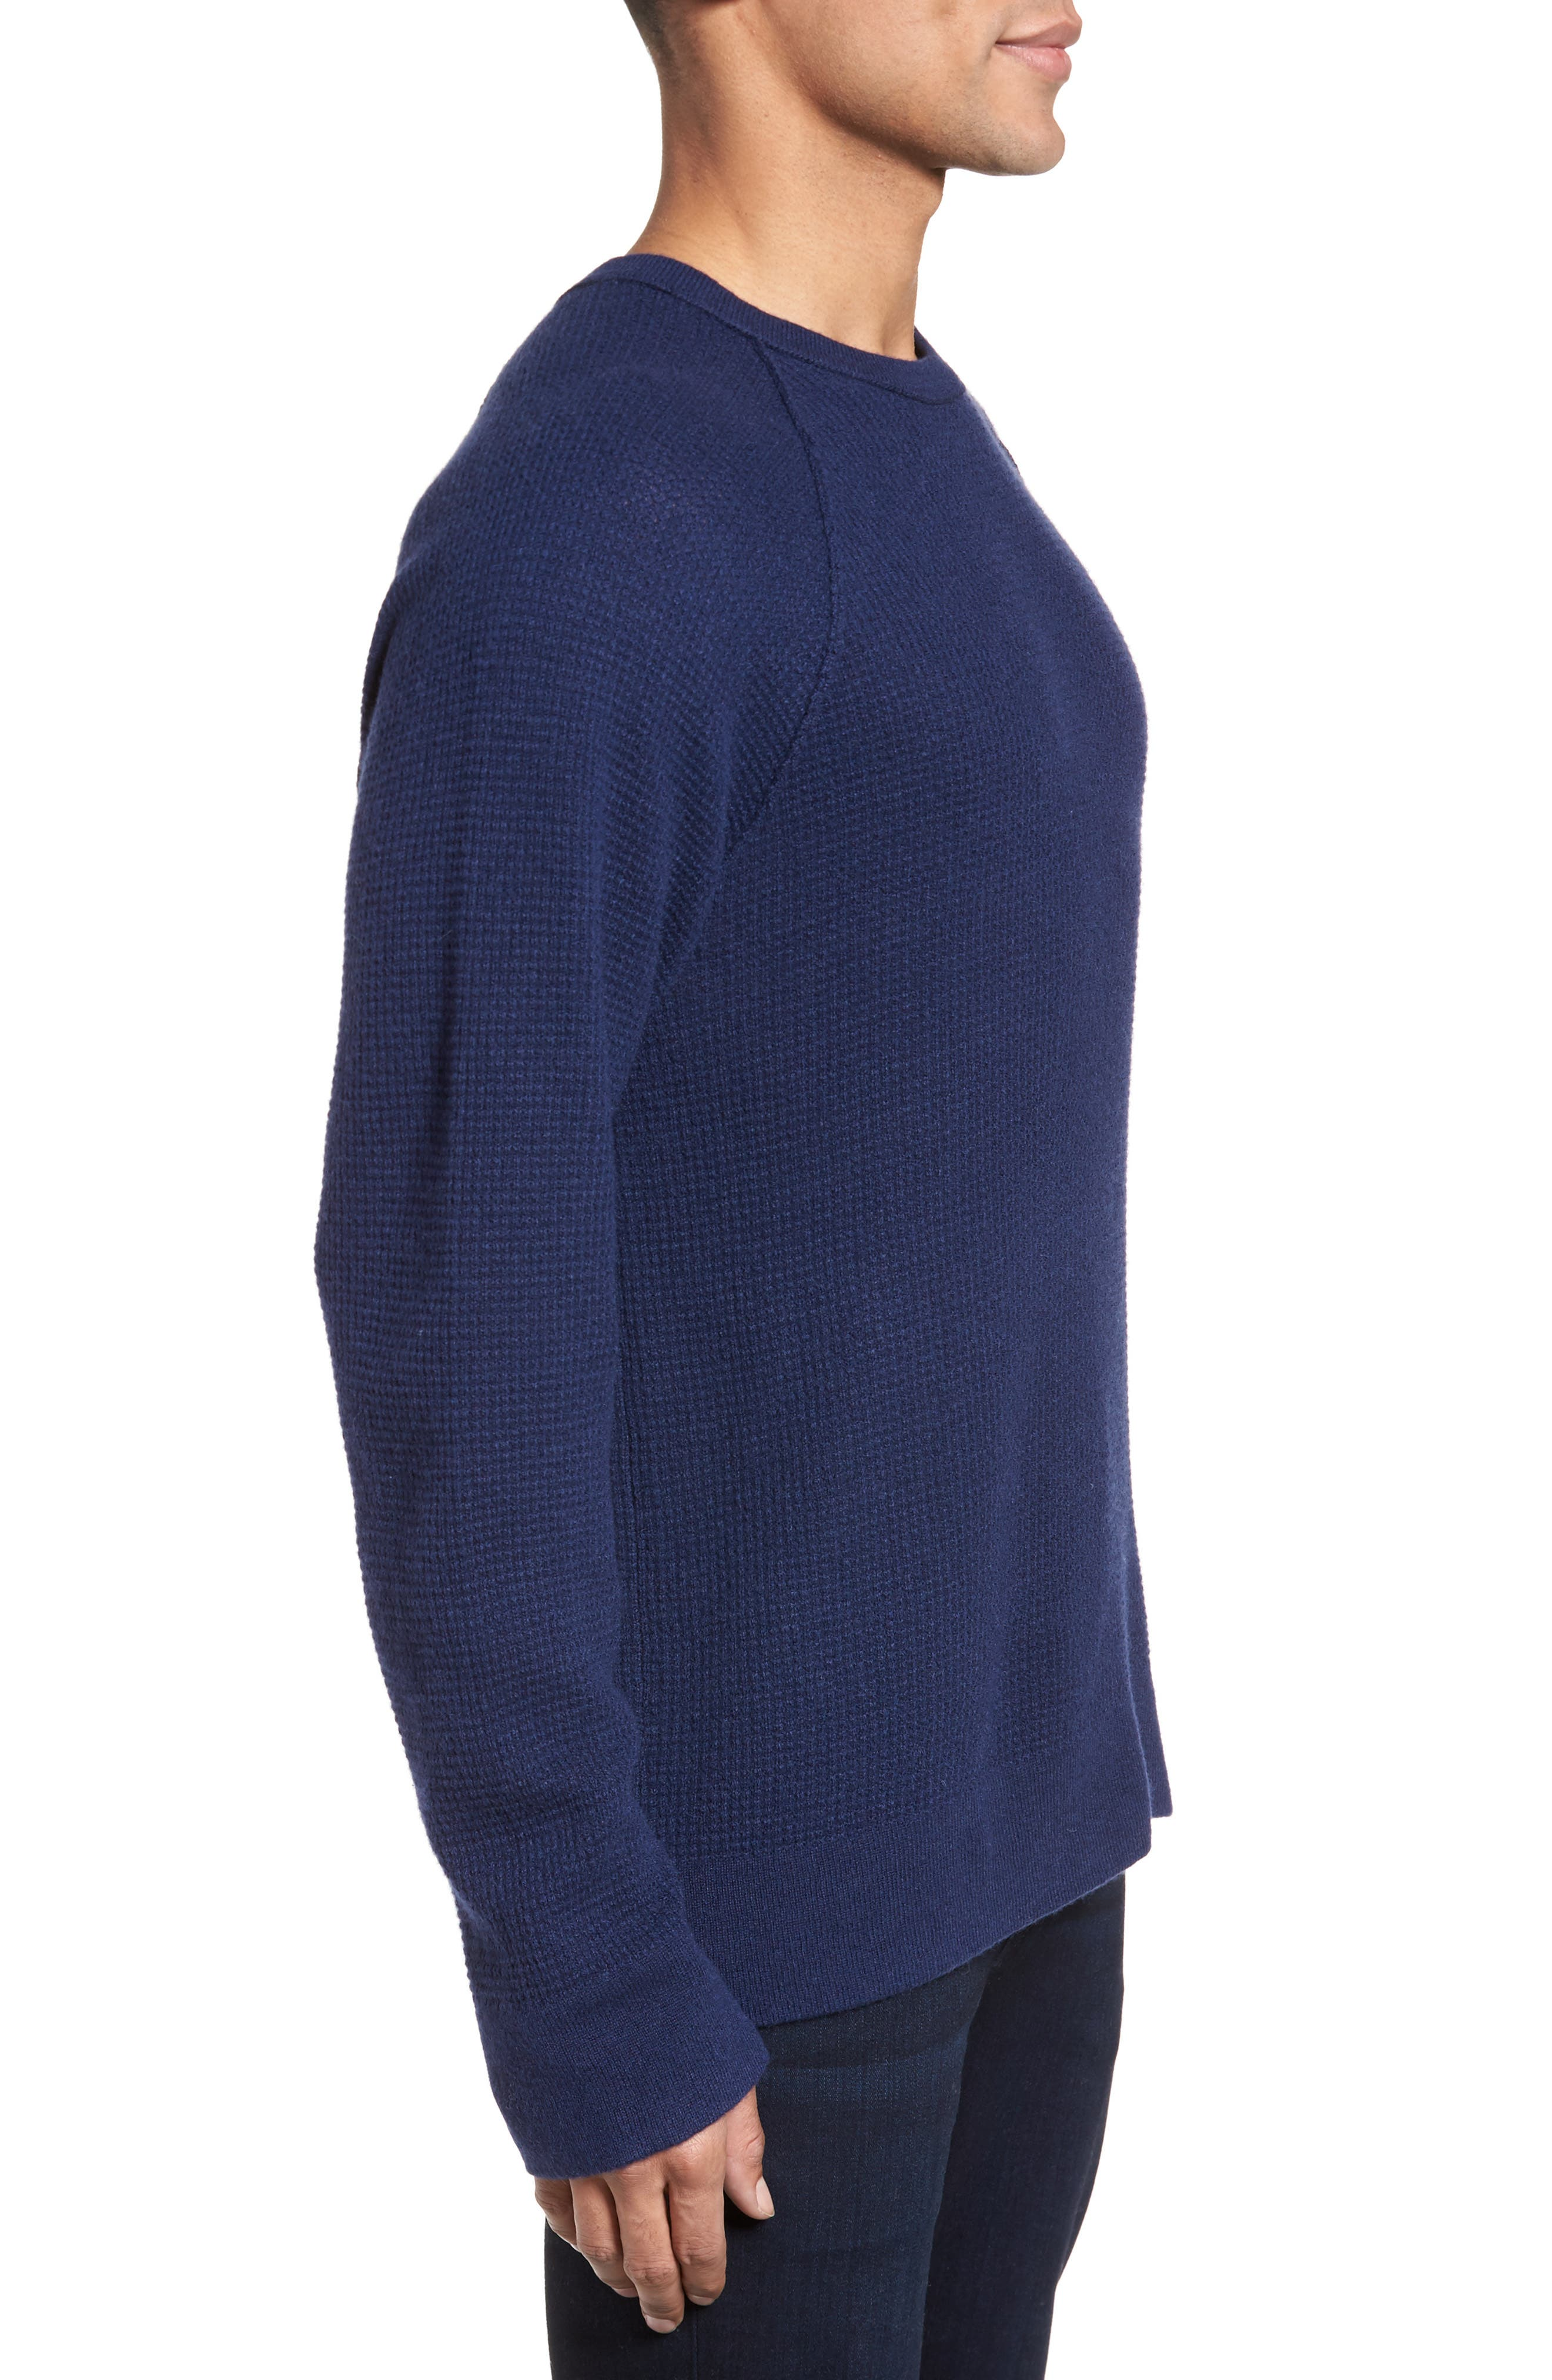 Thermal Cashmere Sweater,                             Alternate thumbnail 3, color,                             Blue